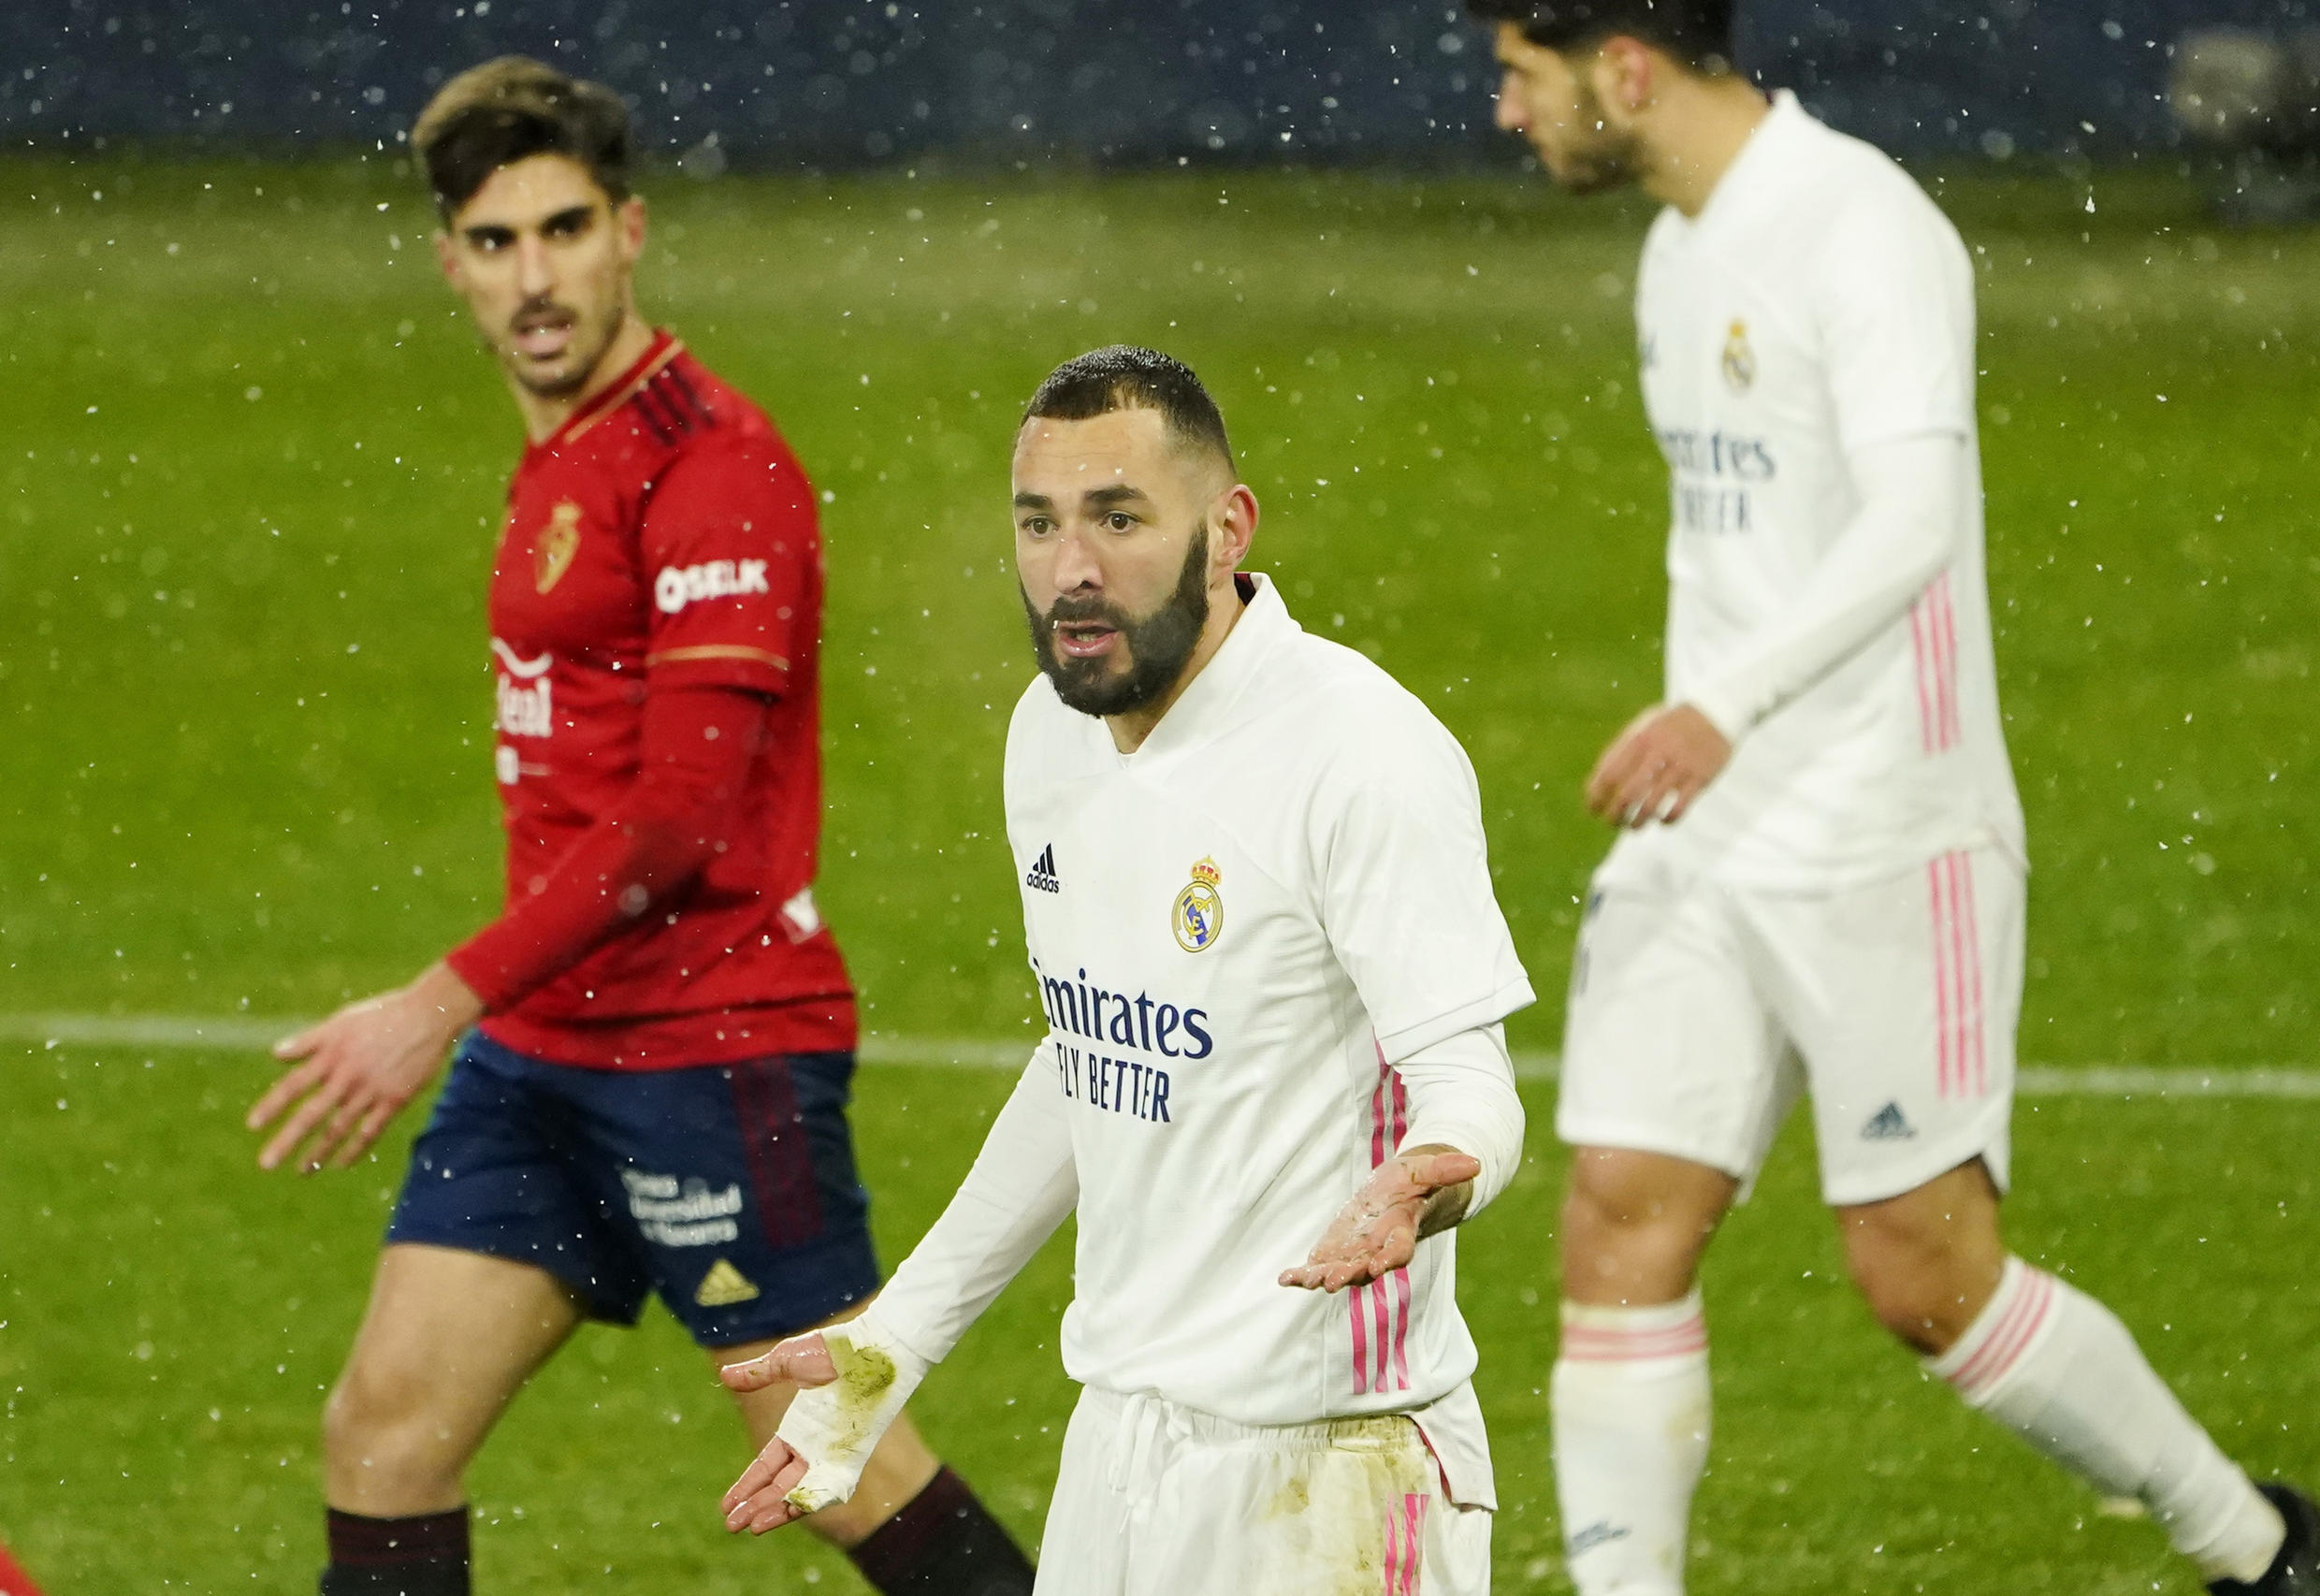 2021-01-09T212205Z_544630130_UP1EH191NCTGF_RTRMADP_3_SOCCER-SPAIN-OSA-MAD-REPORT